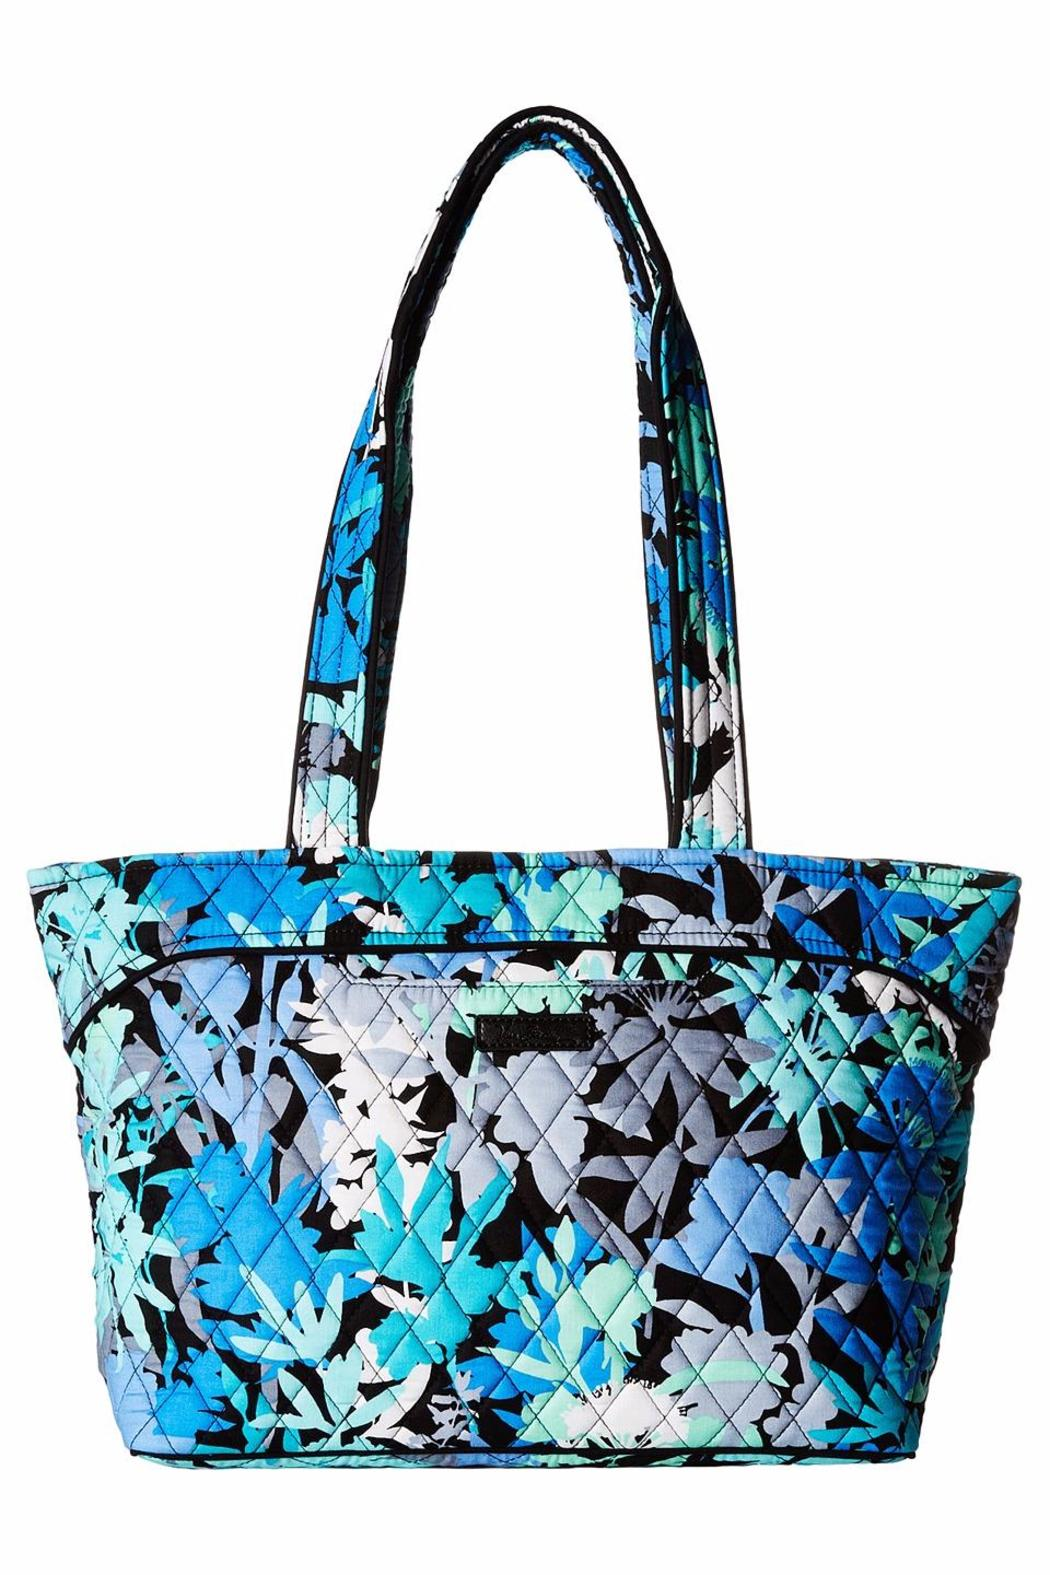 Vera Bradley Mandy Camofloral Tote From Omaha By Material Girl